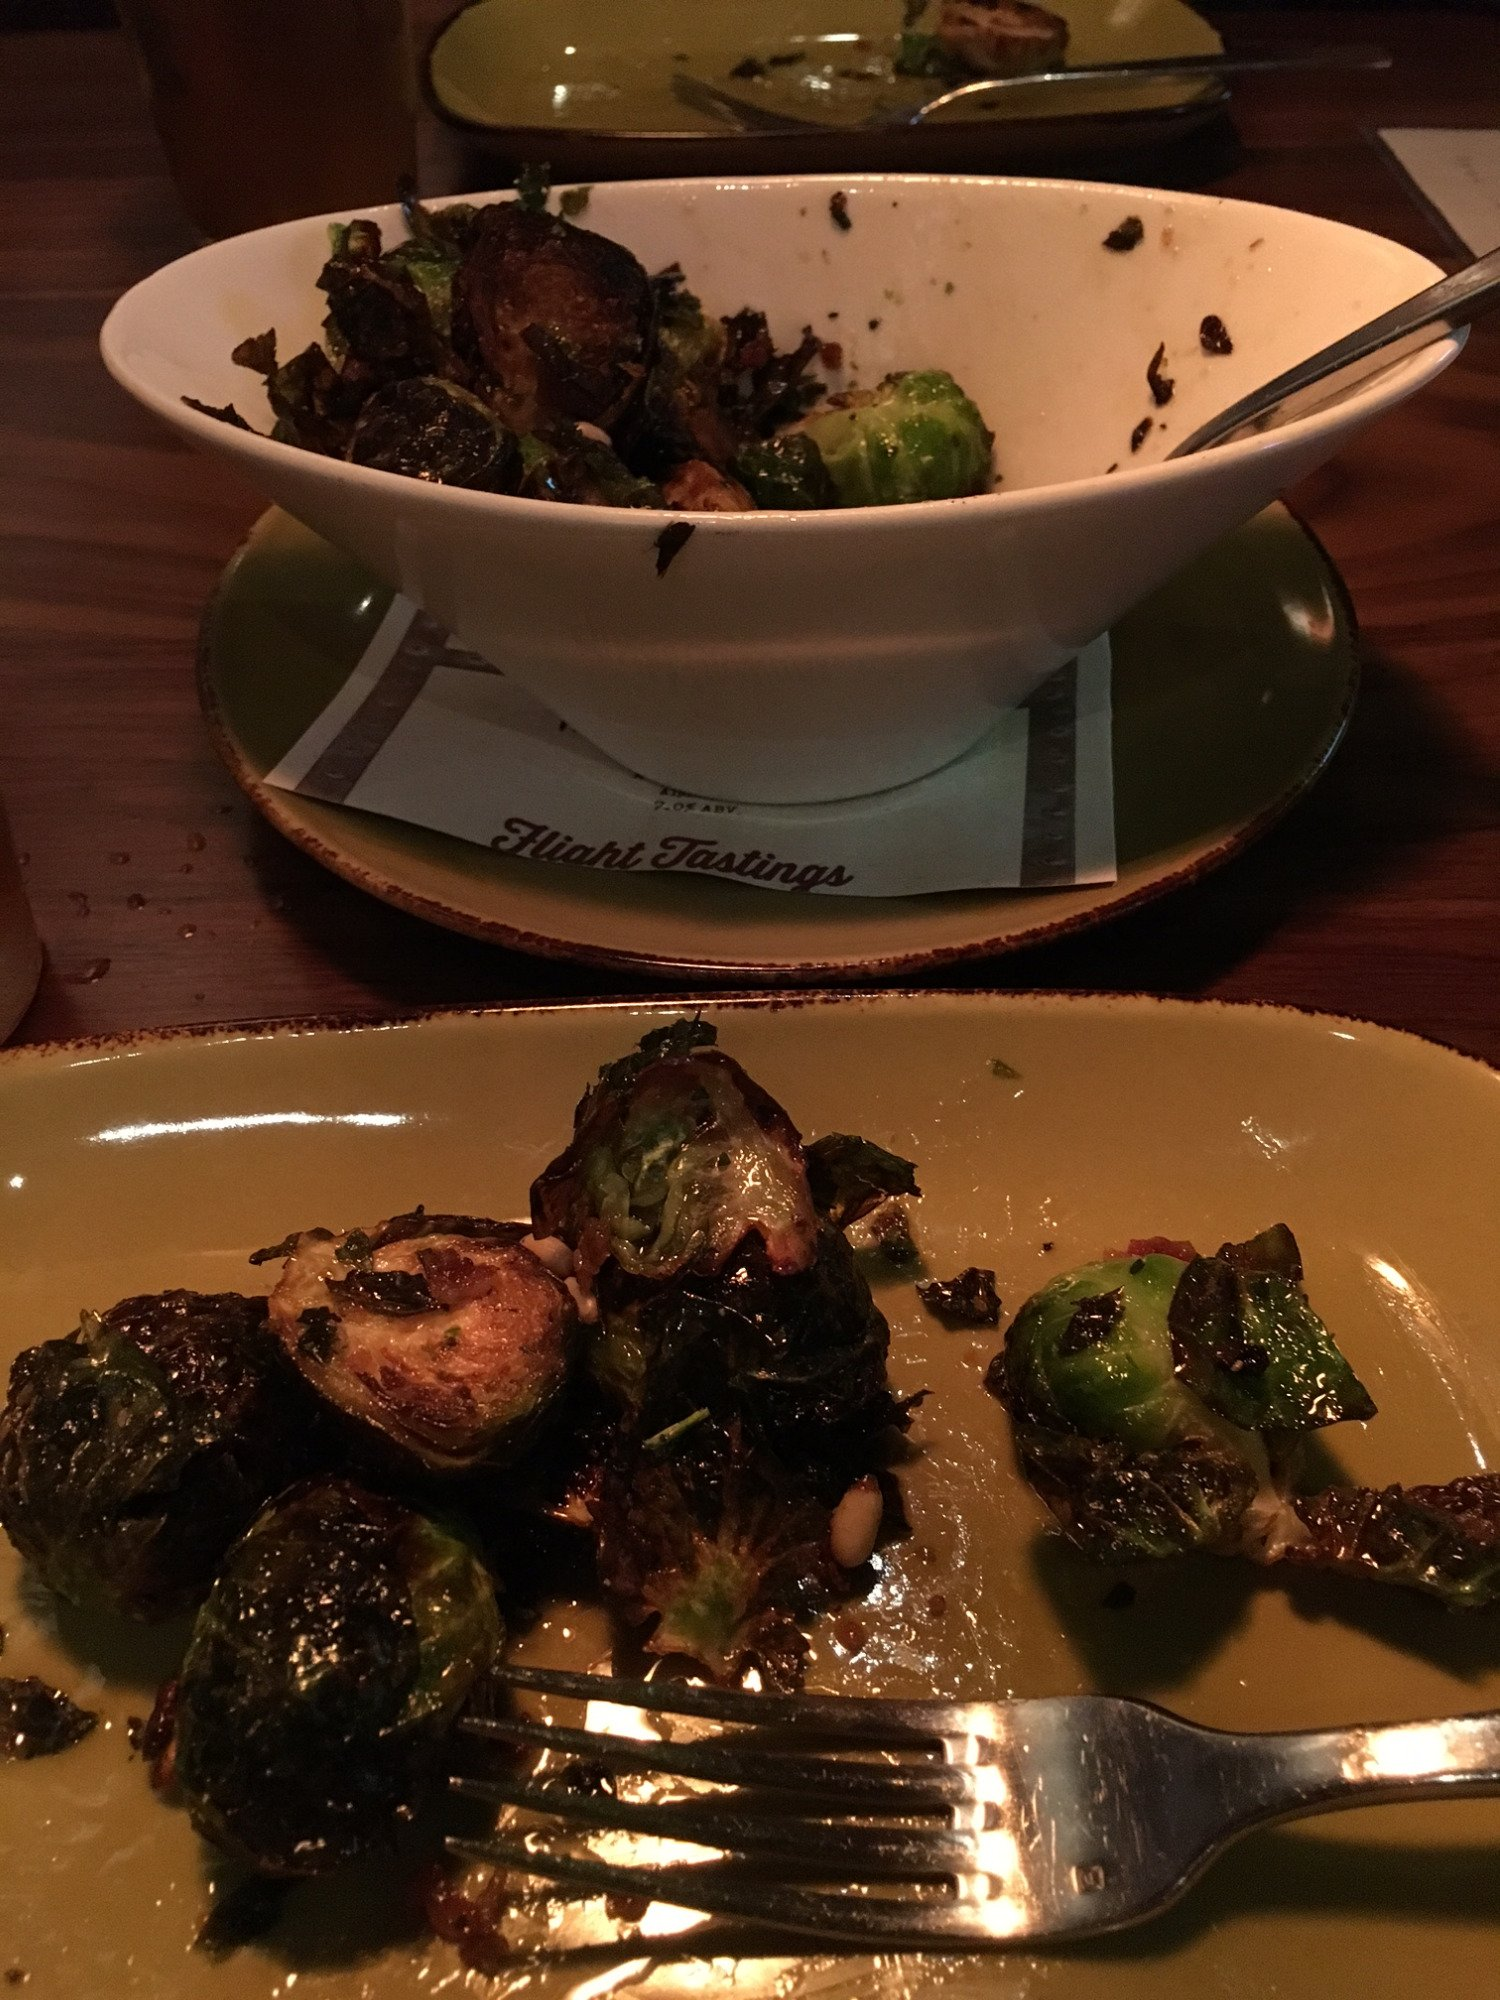 The bomb brussels sprouts!